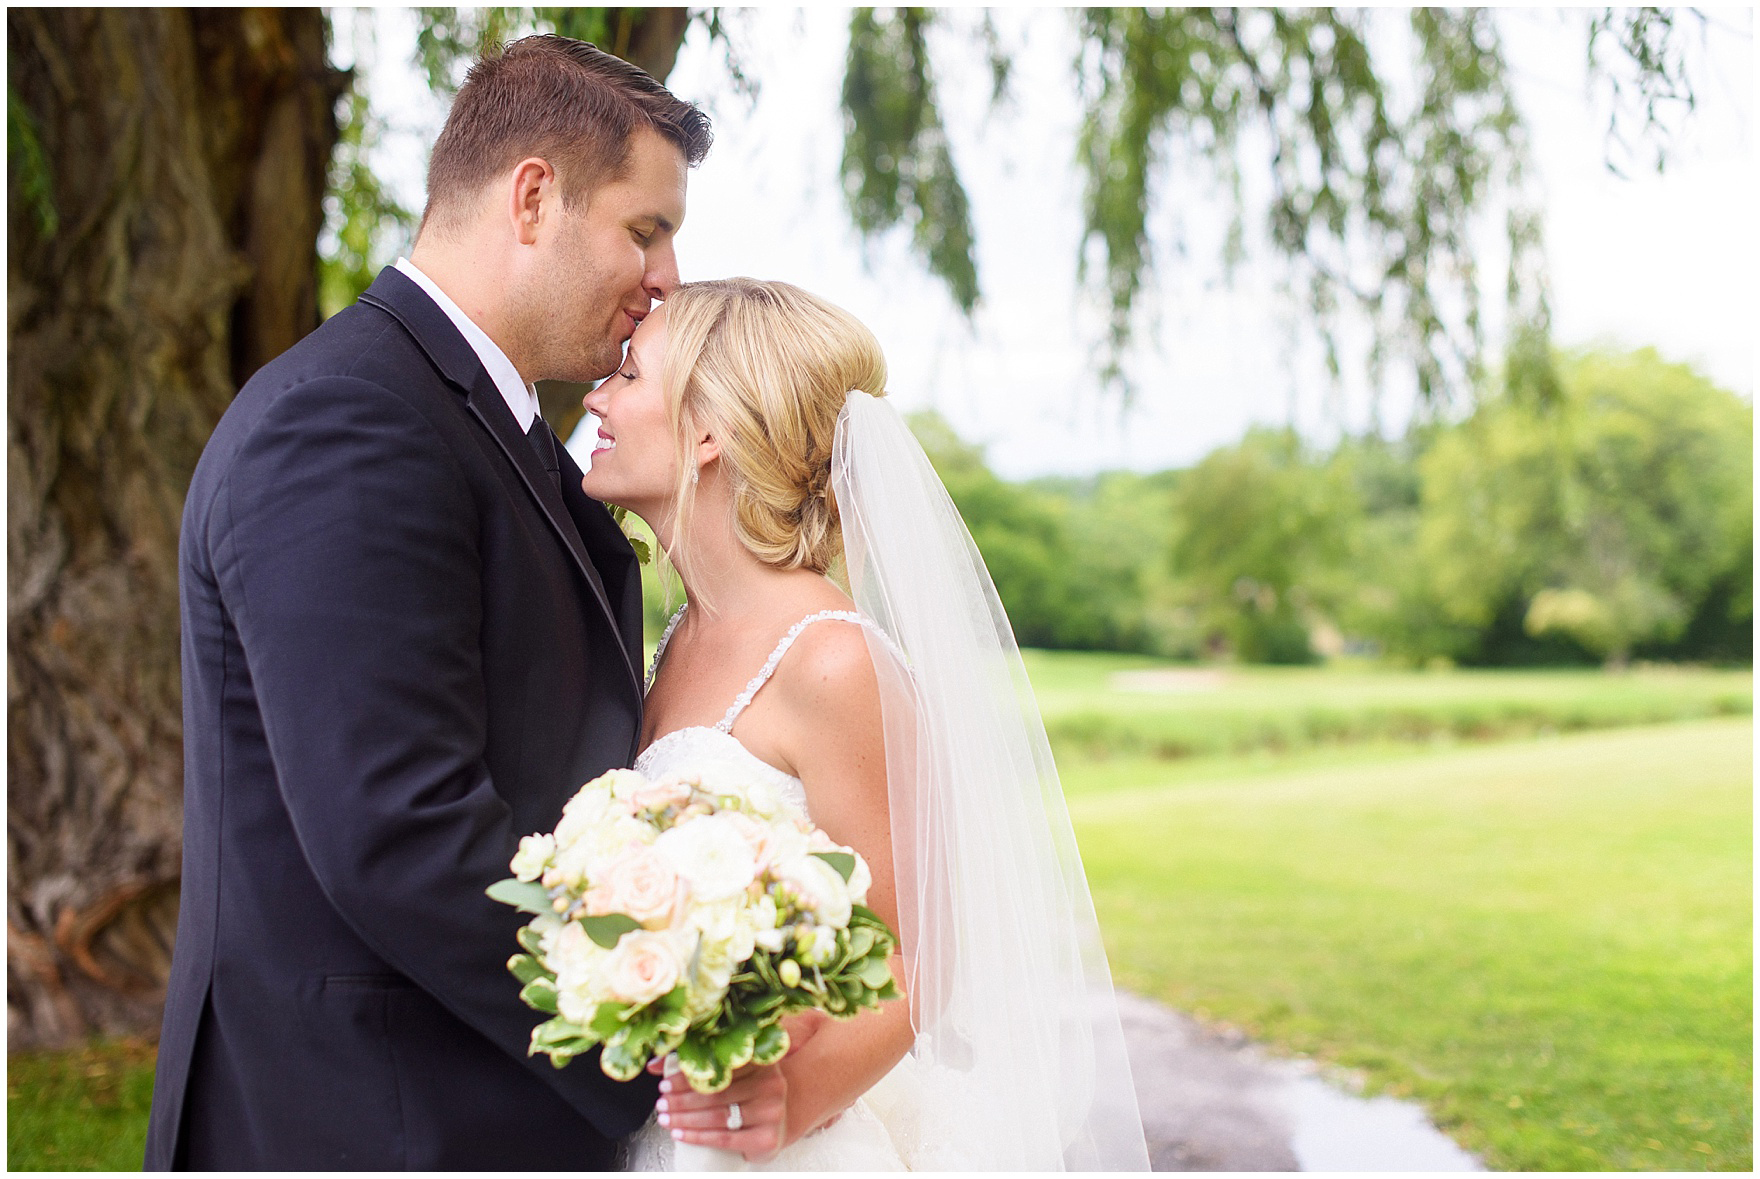 A groom kisses his bride at their Itasca Country Club Illinois wedding.